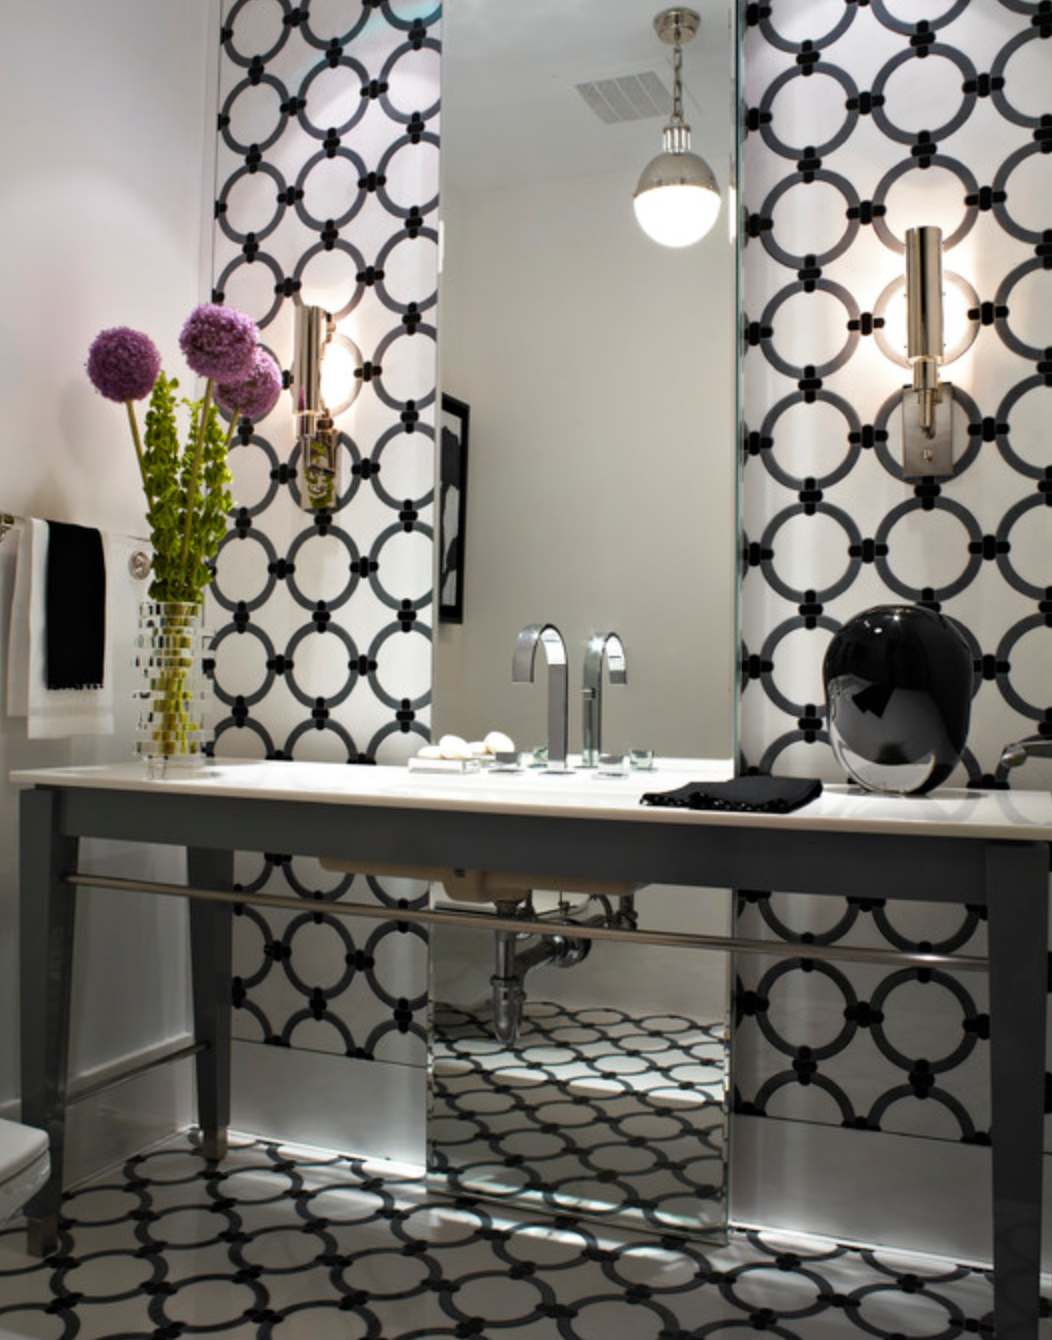 The chic black and white wallpaper and art deco lighting